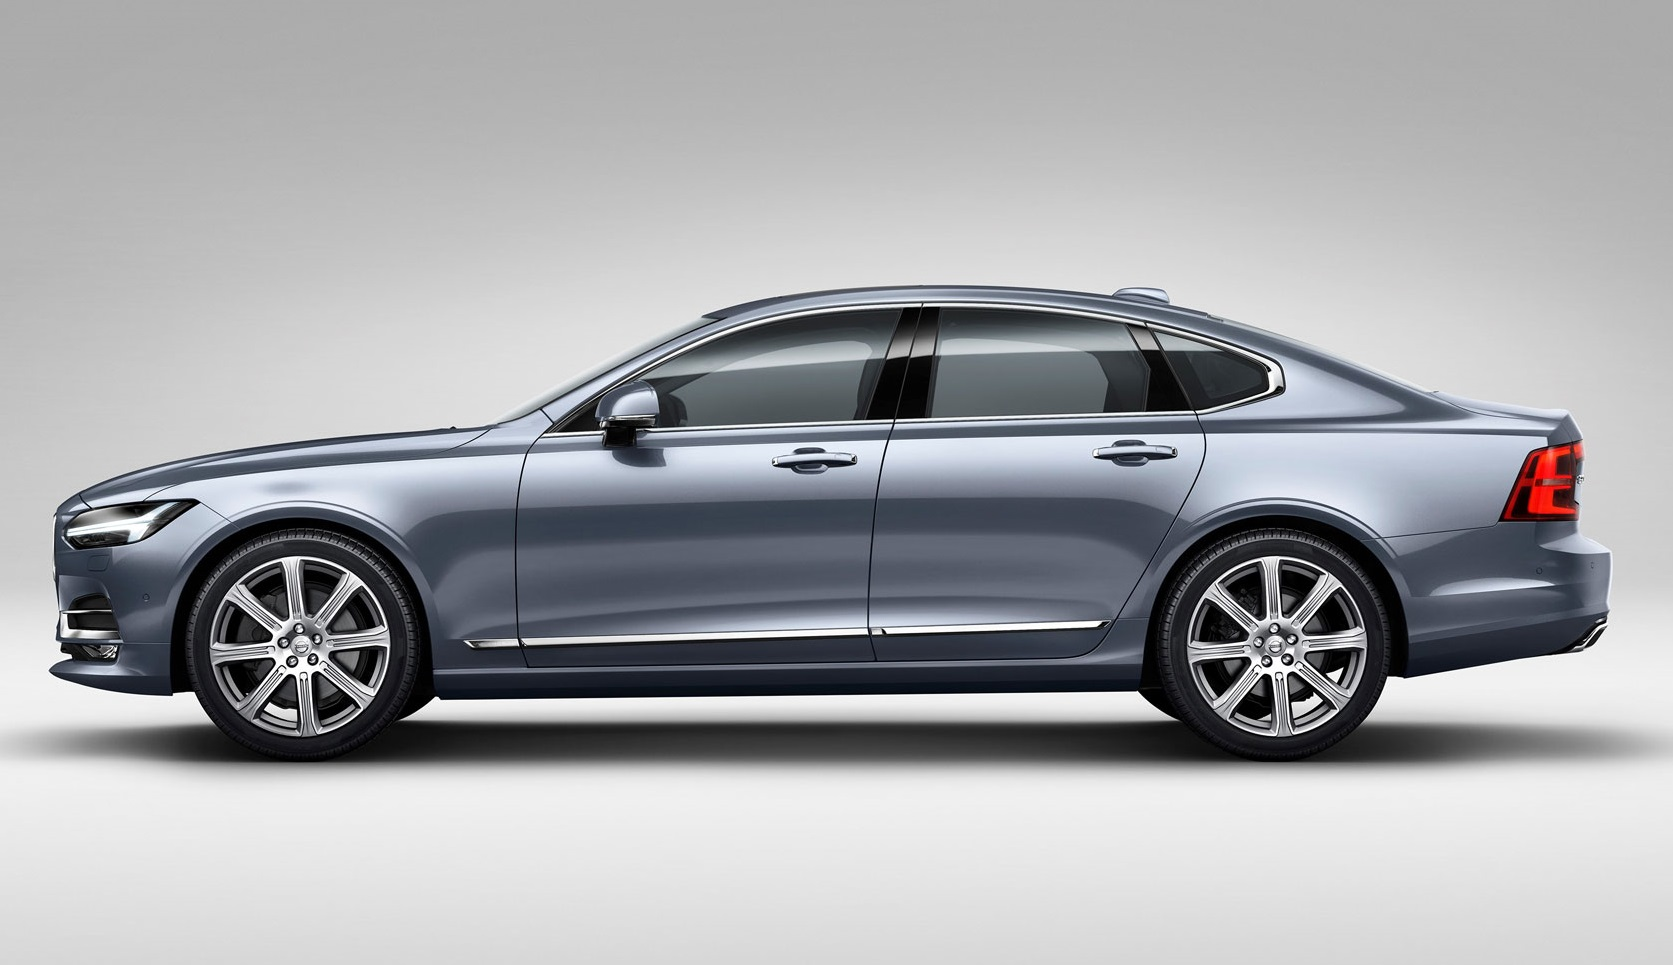 2017_Volvo_S90_Side_Profile_1